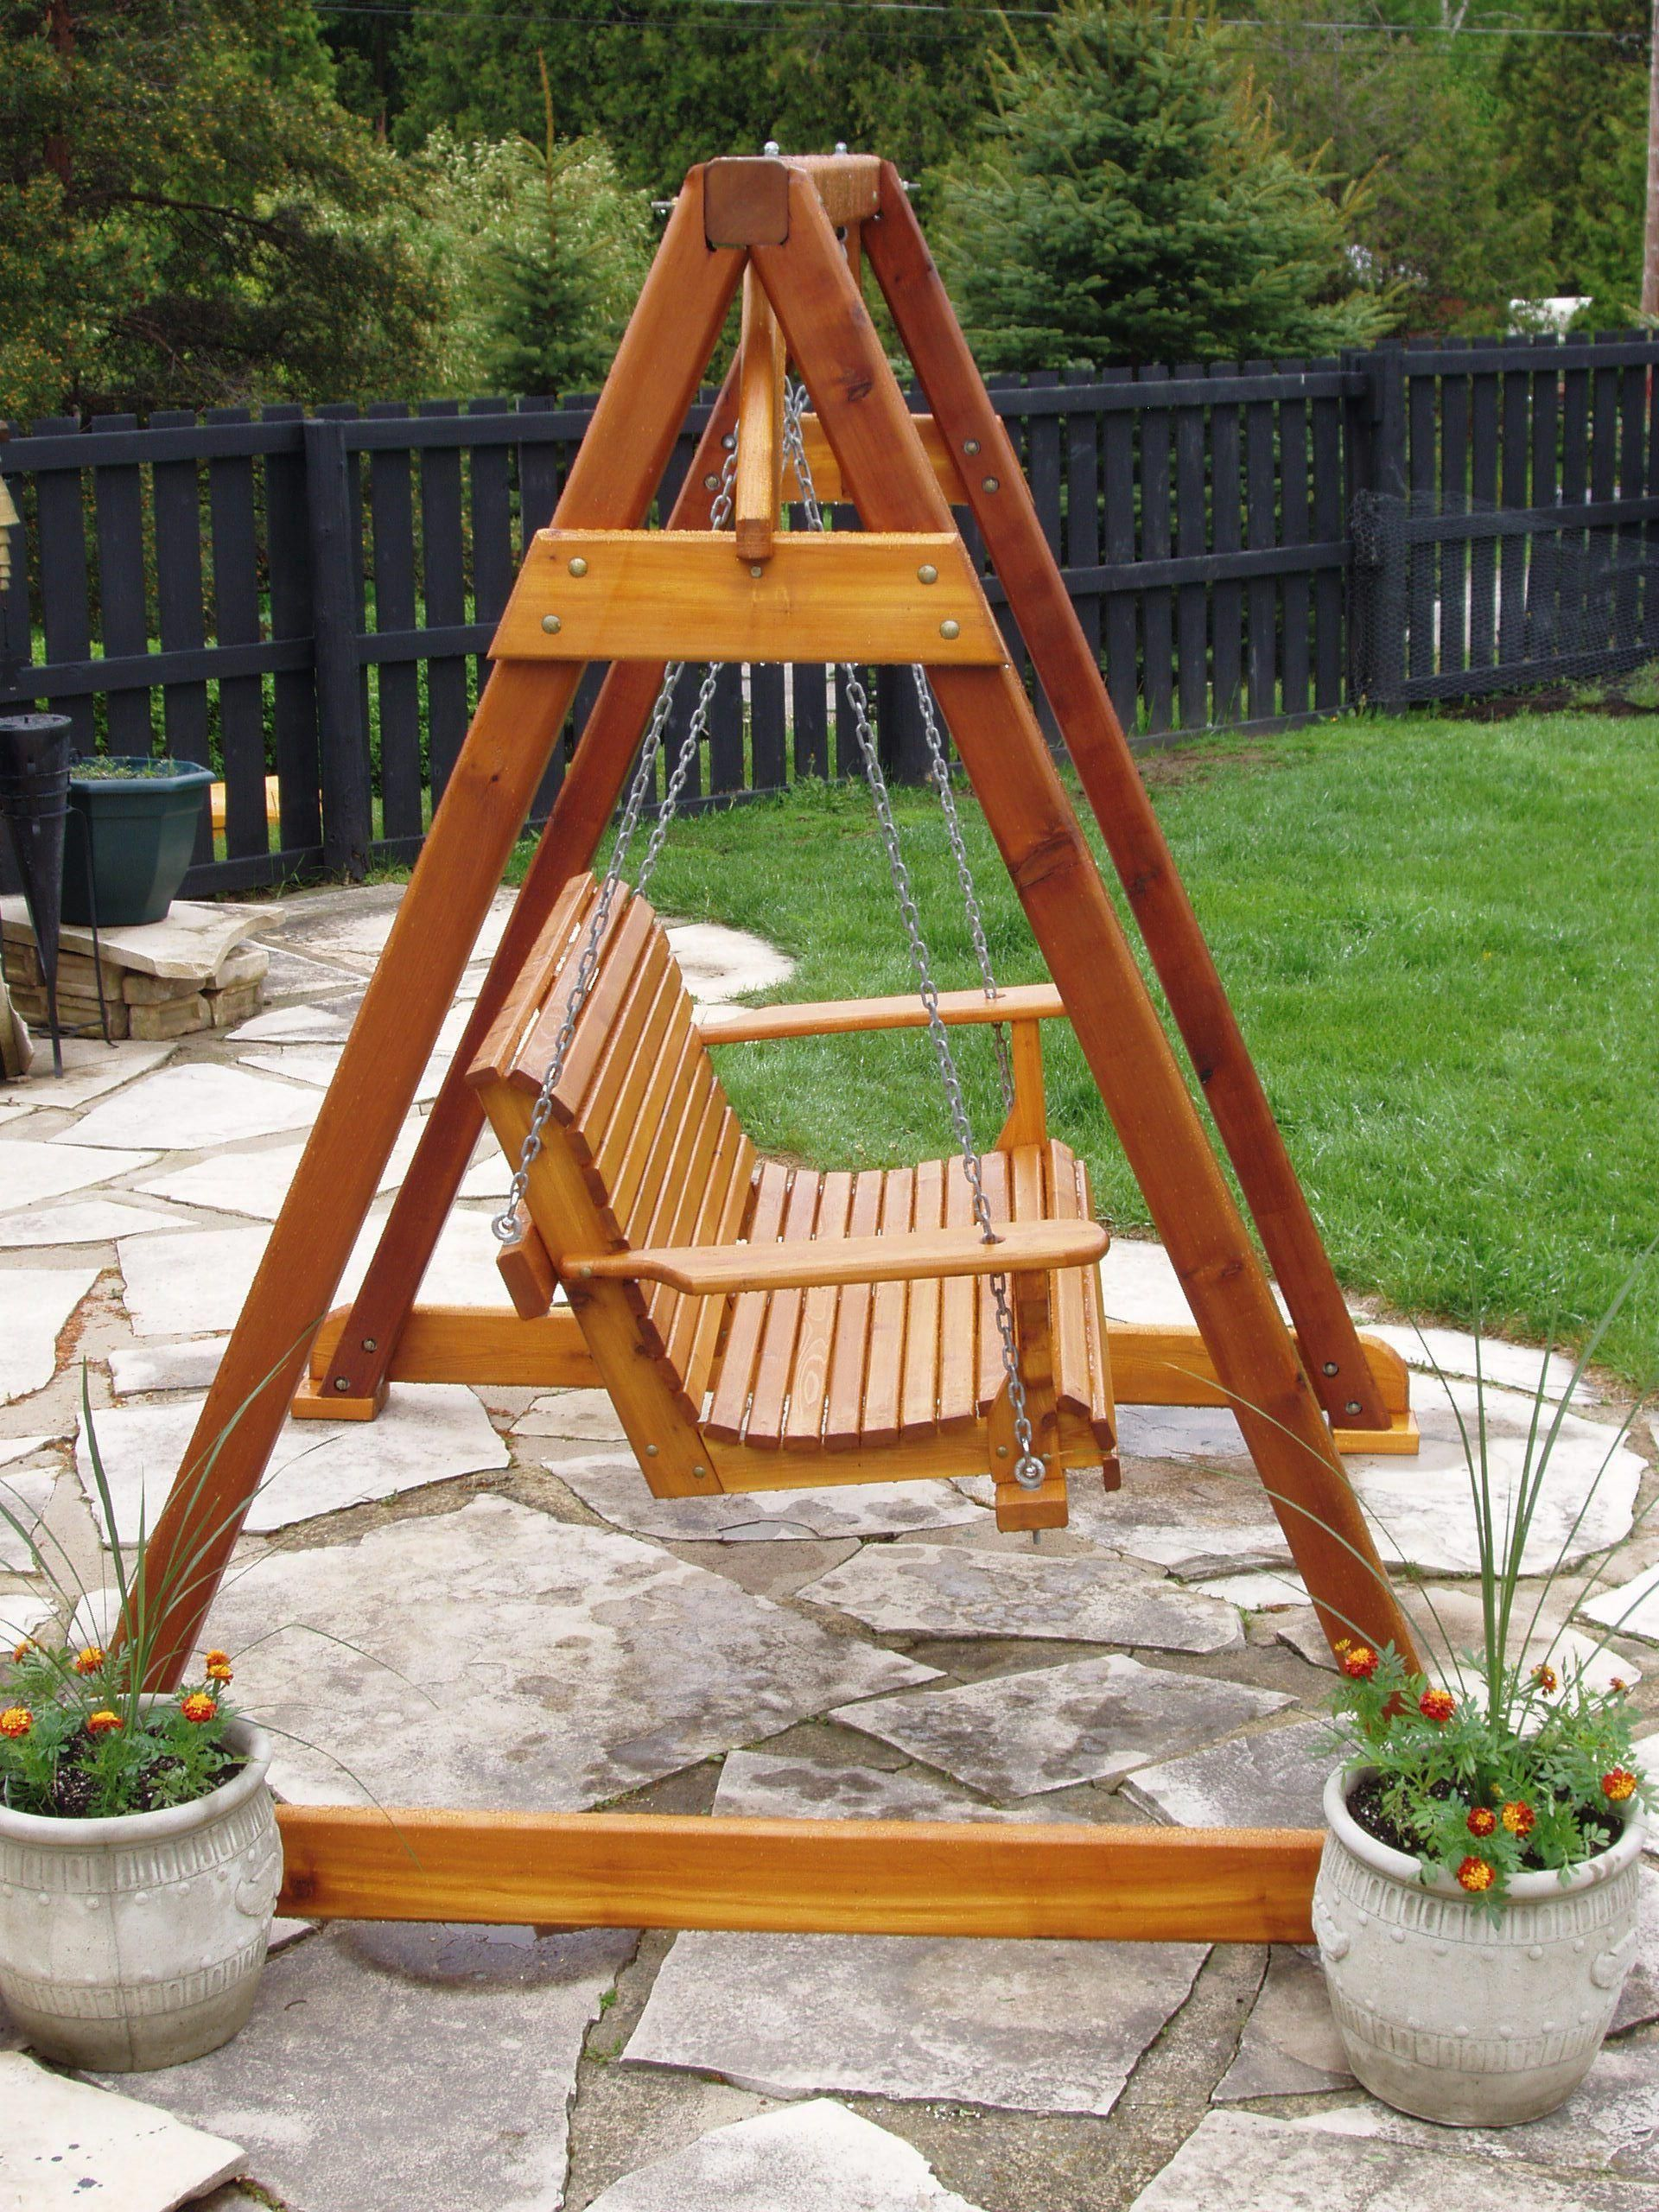 Build porch swing frame diywoodprojects woodworking life in